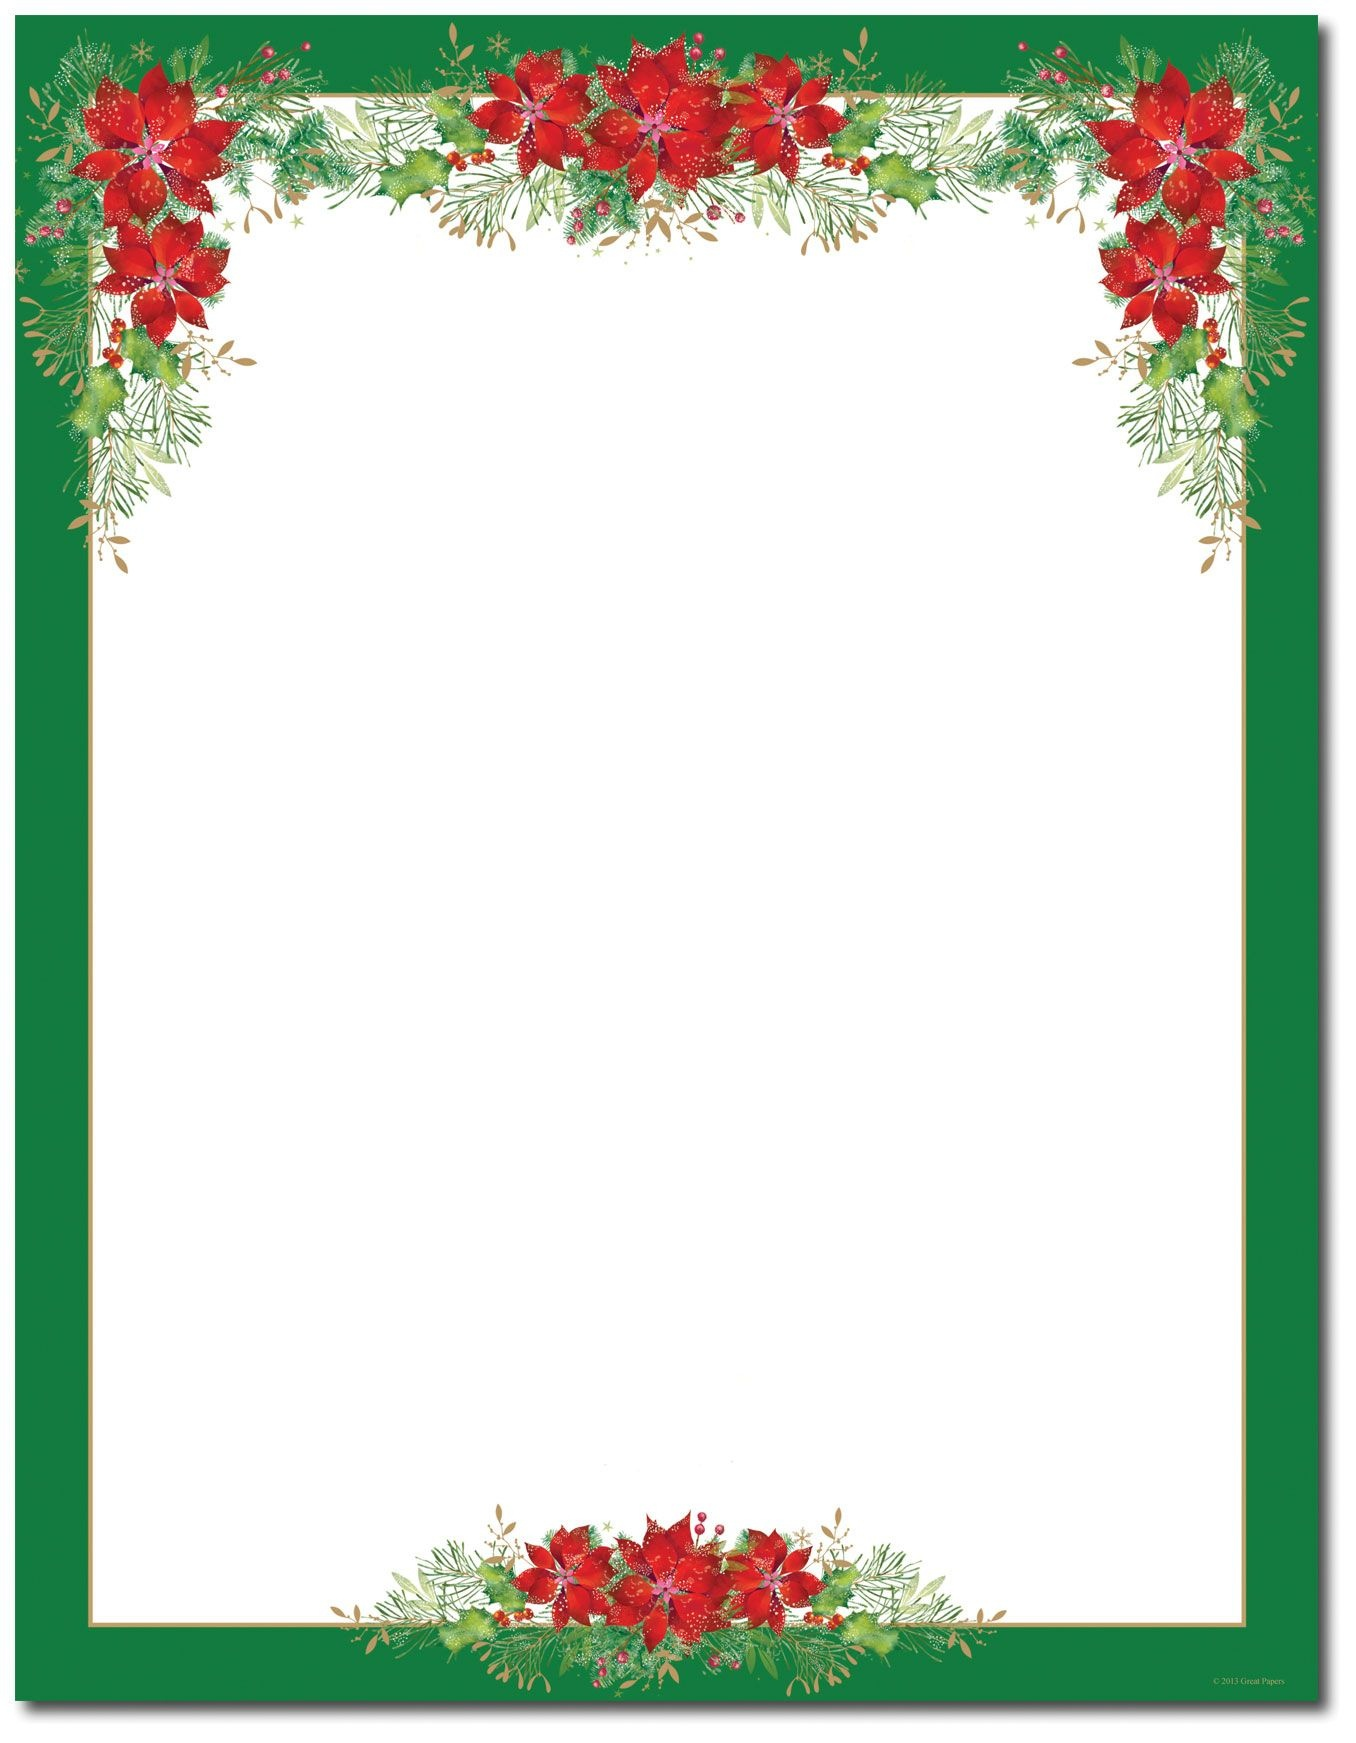 Poinsettia Valance Letterhead   Holiday Papers   Christmas Border - Free Printable Christmas Stationery Paper